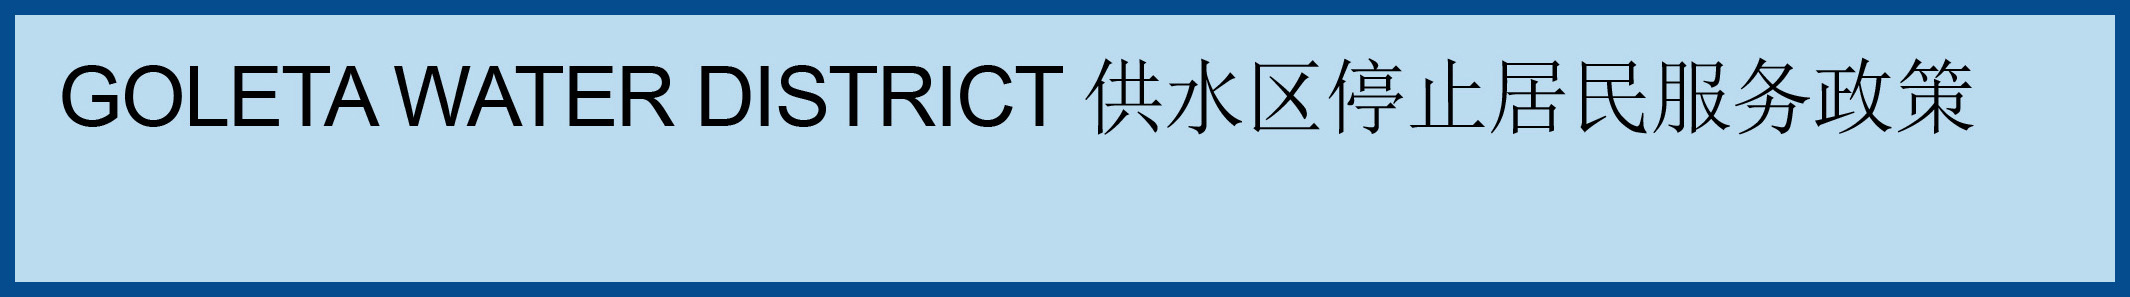 Discontinuation of Residential Water Service Policy Chinese Graphic Button